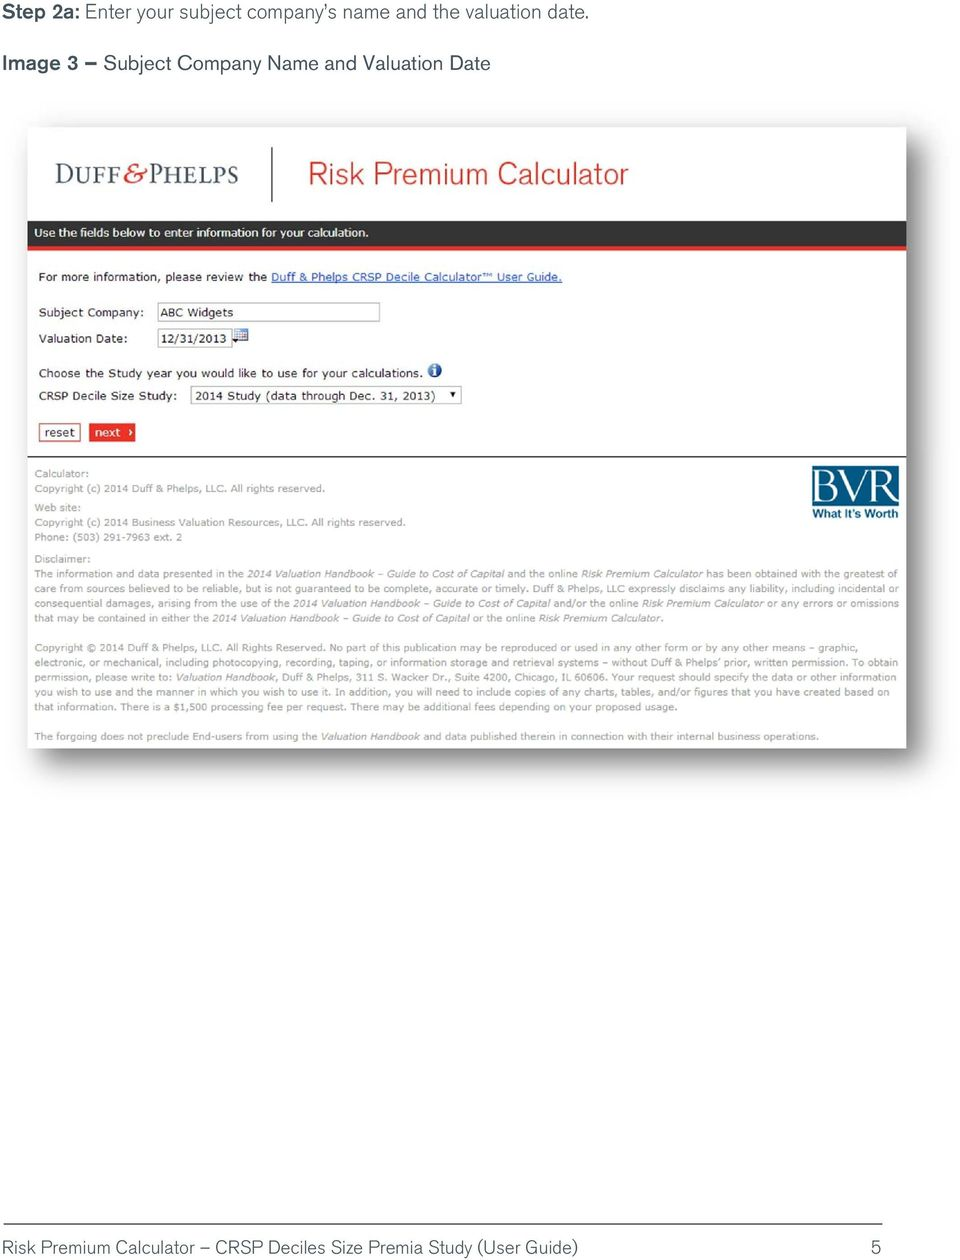 Risk Premium Calculator - PDF